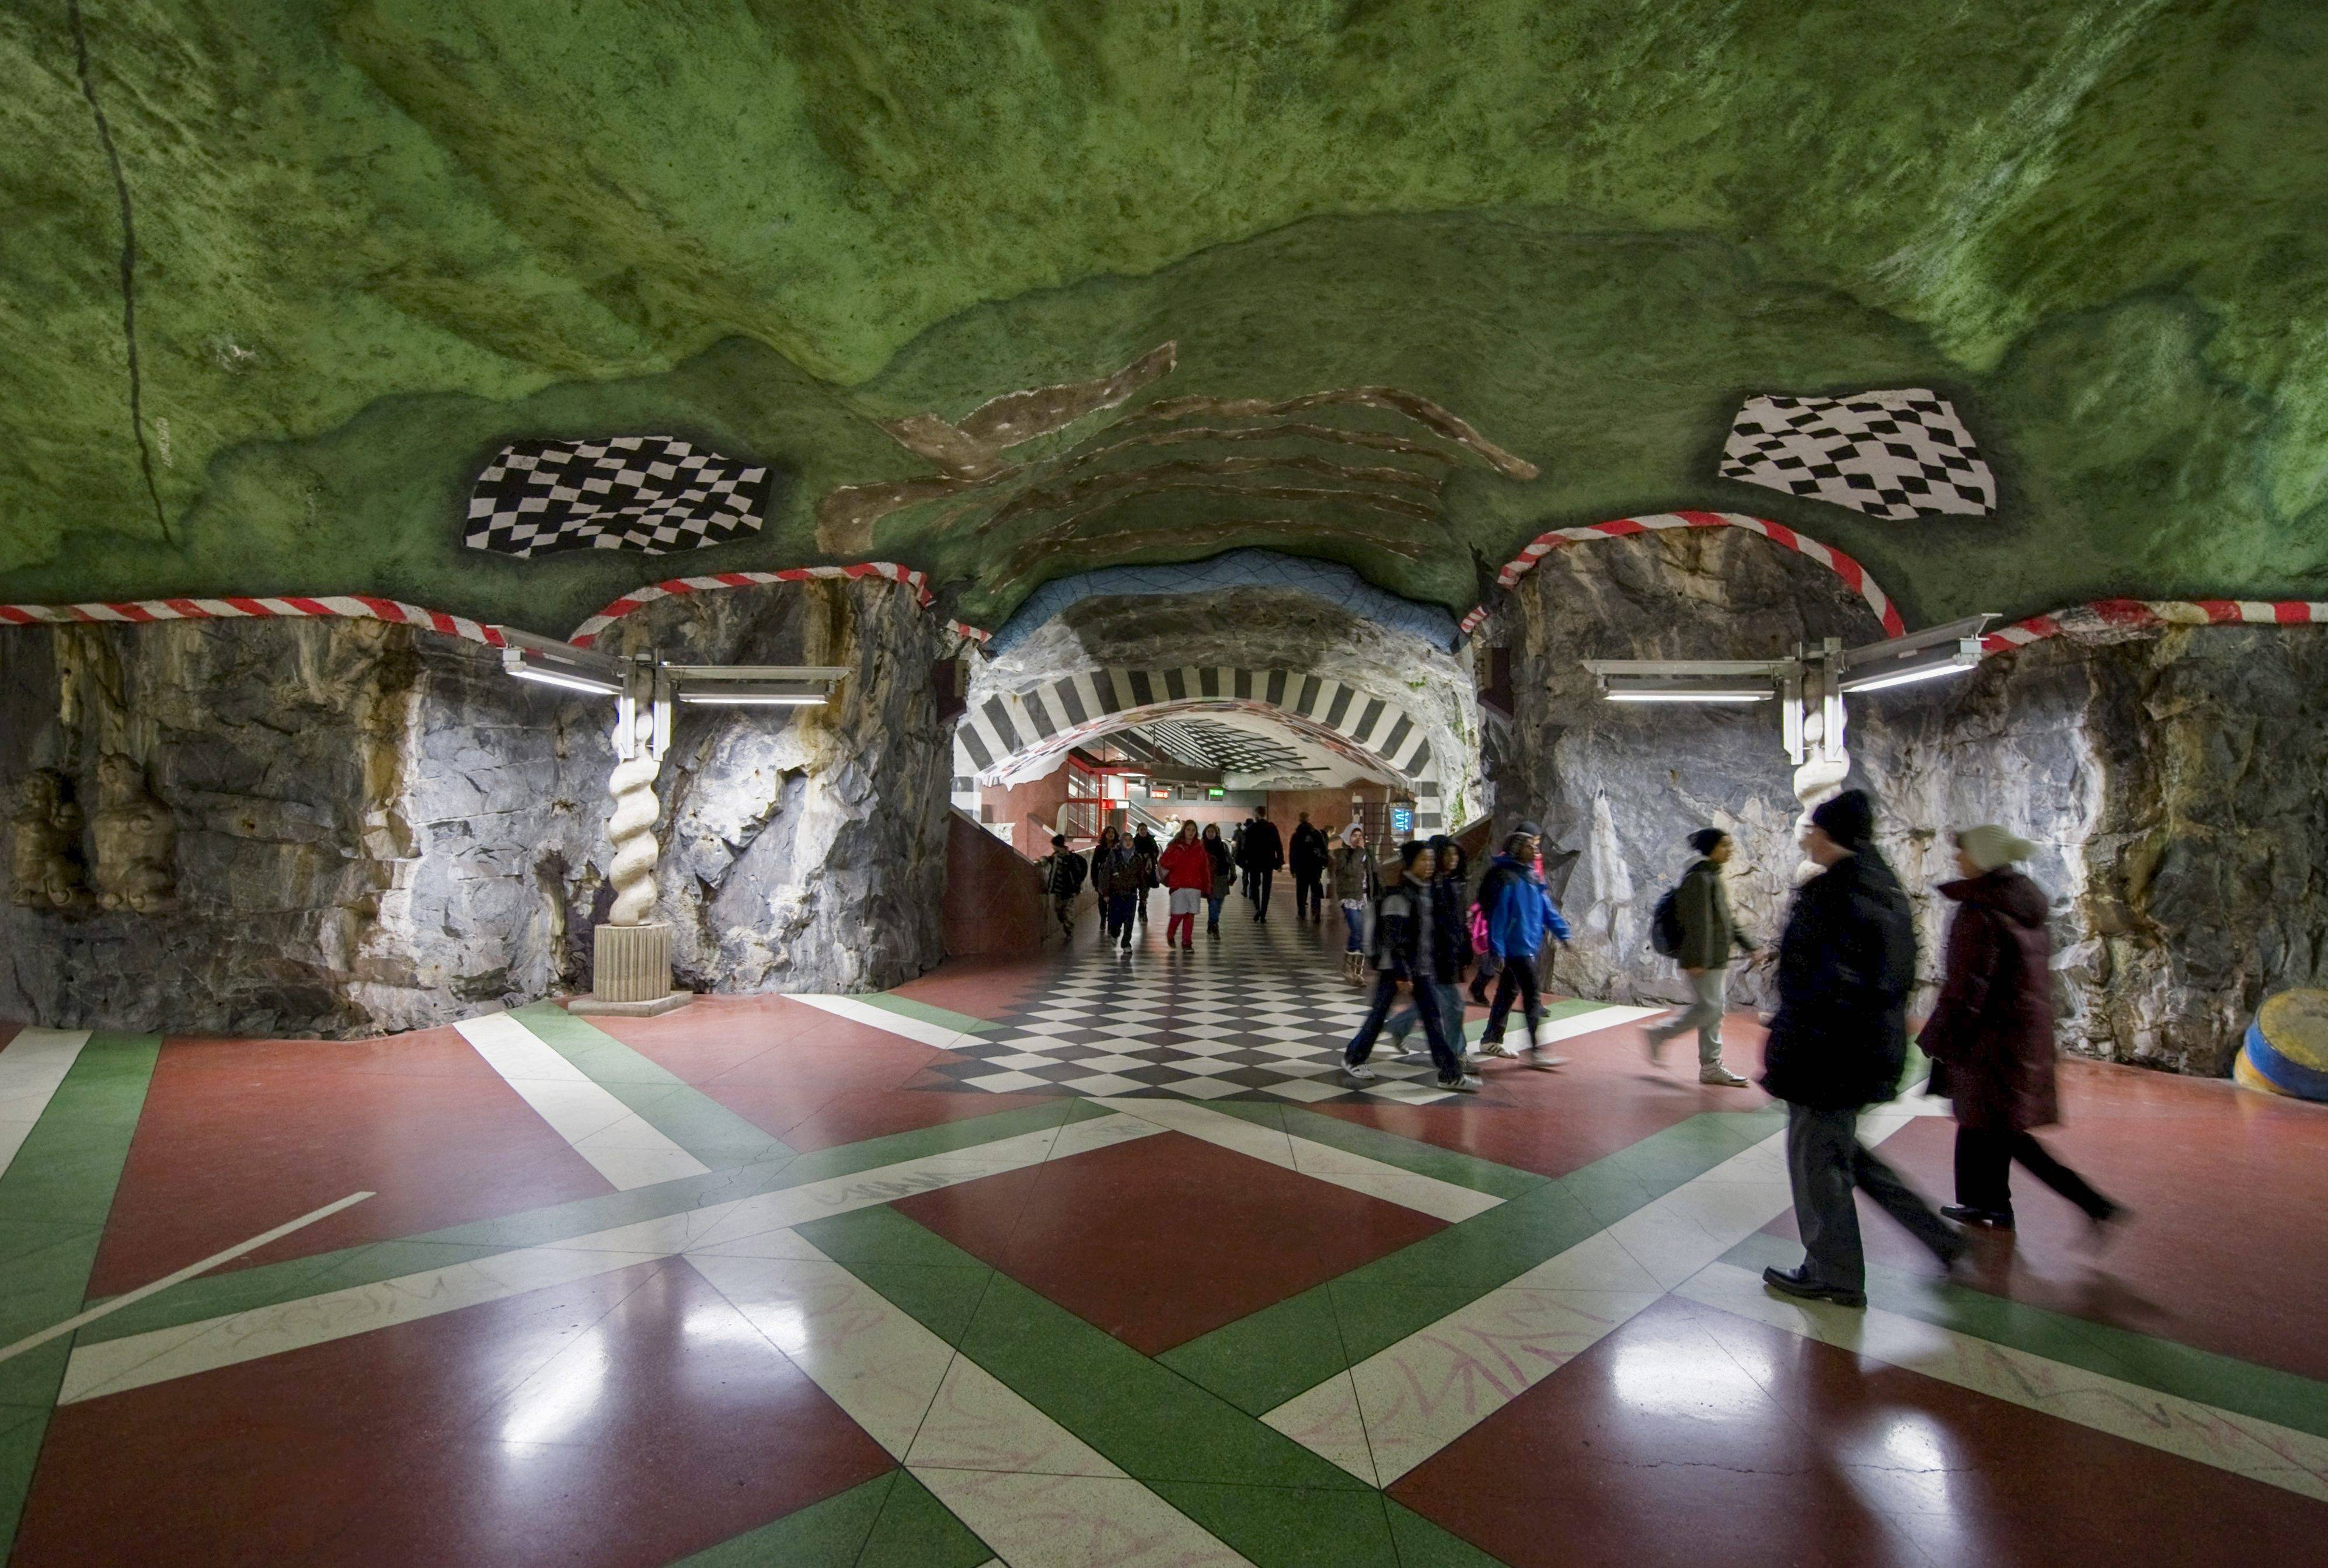 The Kungstradgarden subway station is decorated with murals, mosaics, sculptures or art in Stockholm.